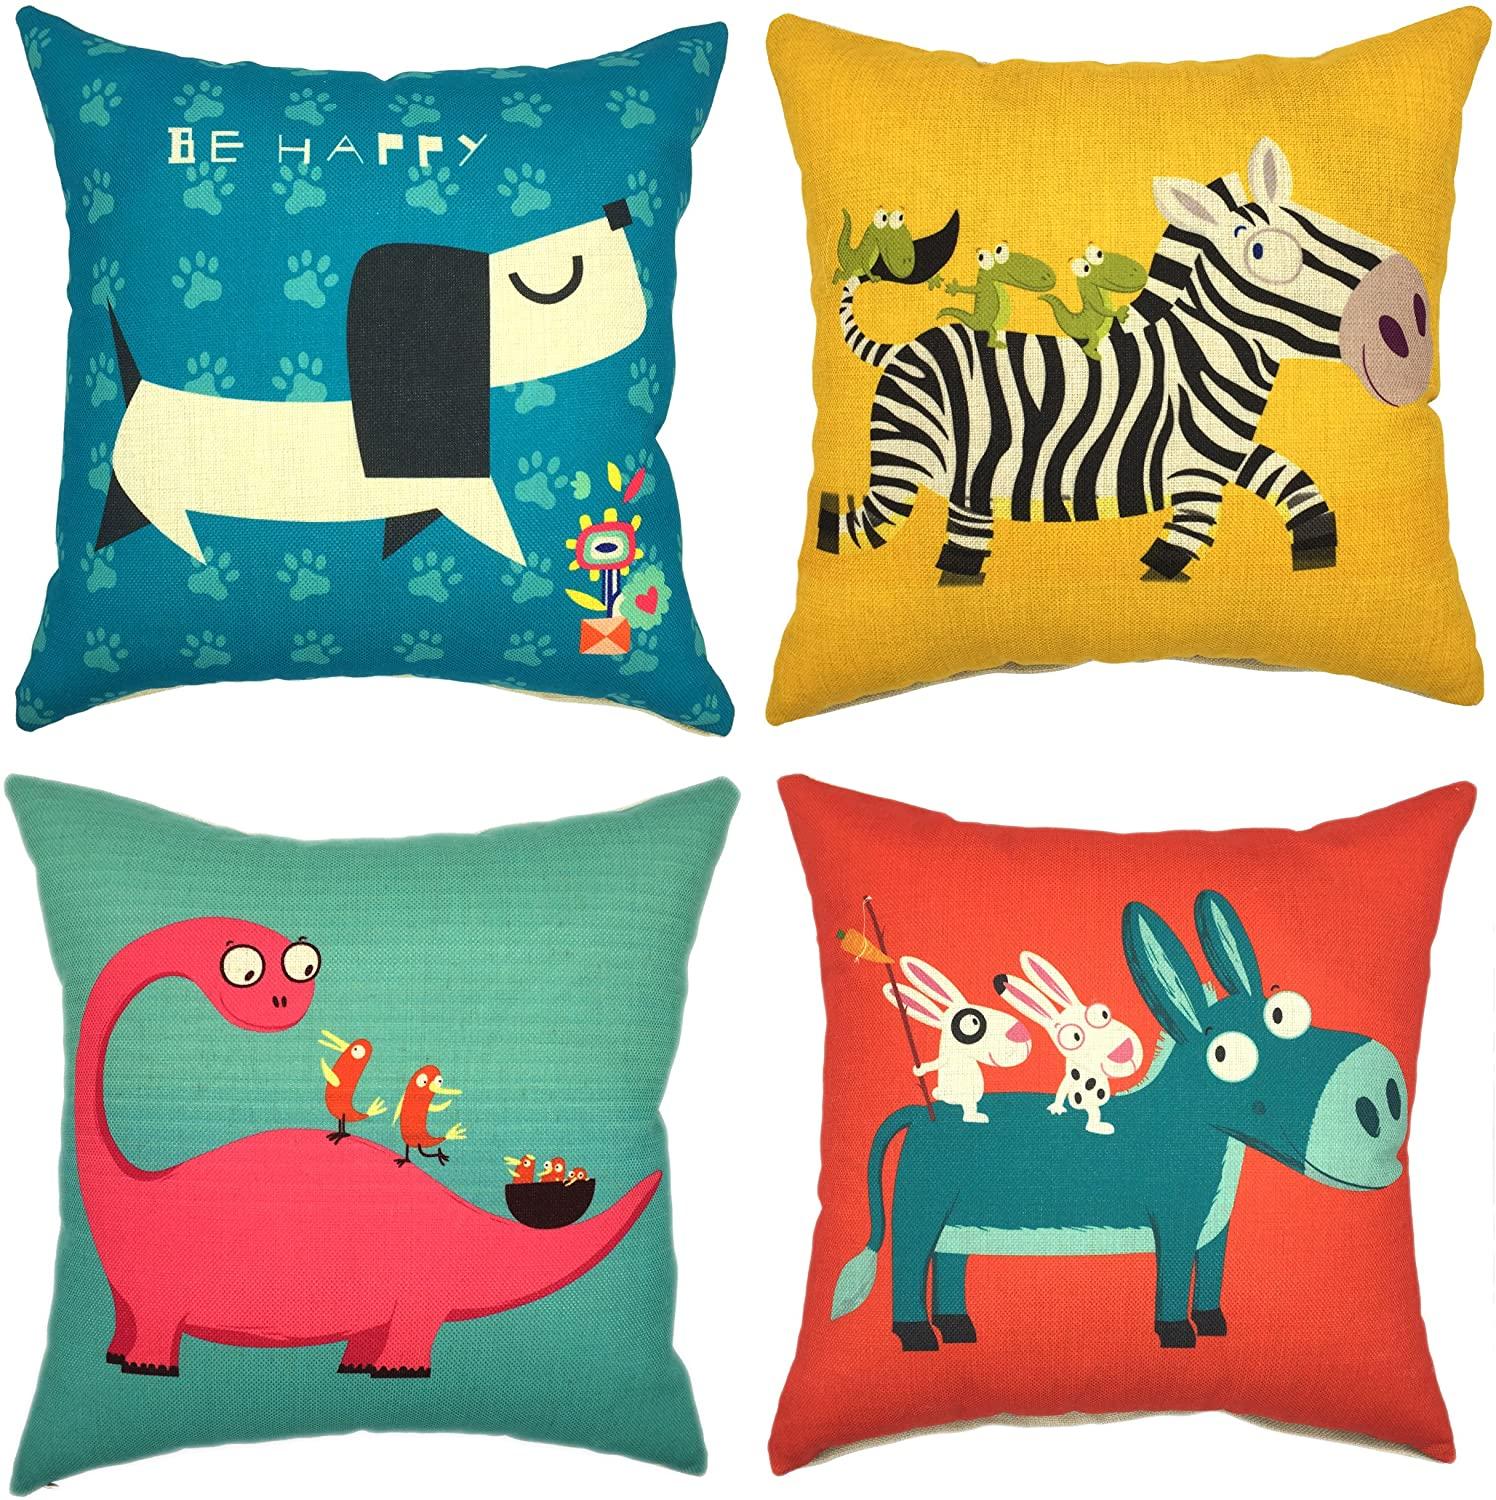 YOUR SMILE Children Series Cute Cartoon Animal Cotton Linen Decorative Throw Pillow Case Cushion Cover Pillowcase for Sofa 18 x 18 Inch, Set of 4